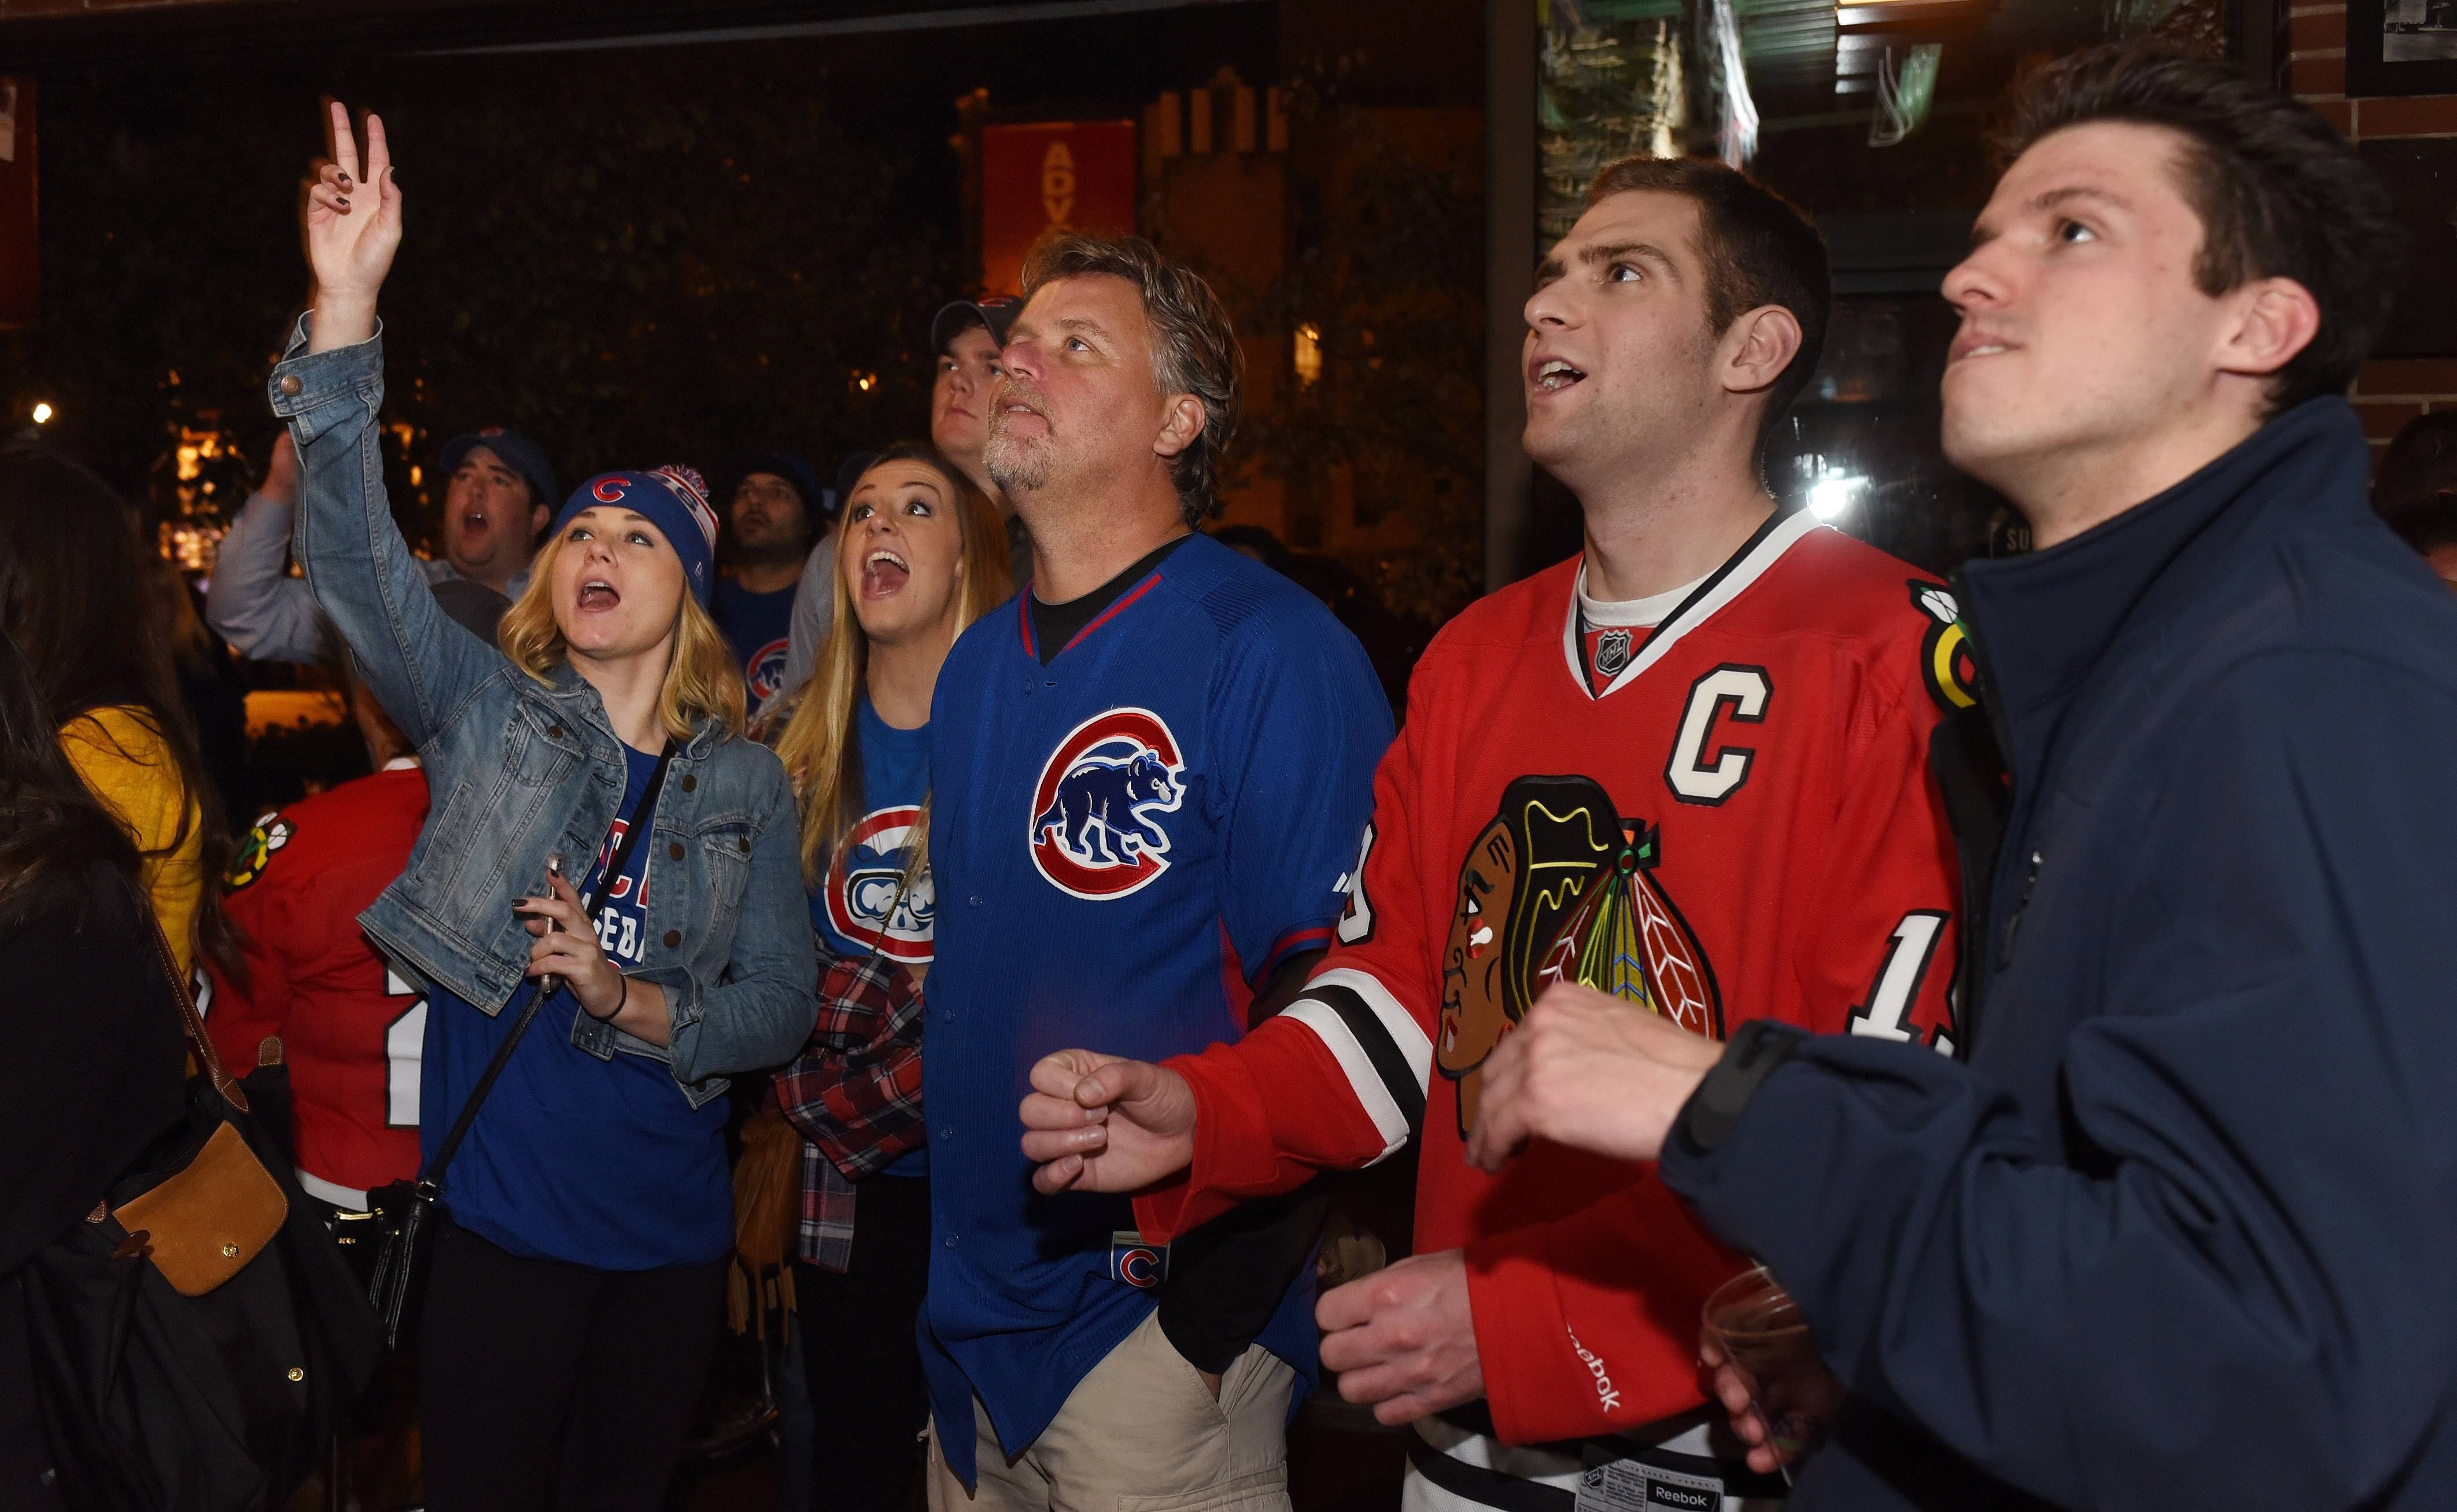 Fans celebrate outside Wrigley Field following the Cubs' win over the Pirates in the National League Wild Card game Wednesday. Crowds are expected to be even larger Monday, when the team takes on archrival St. Louis in the playoffs.